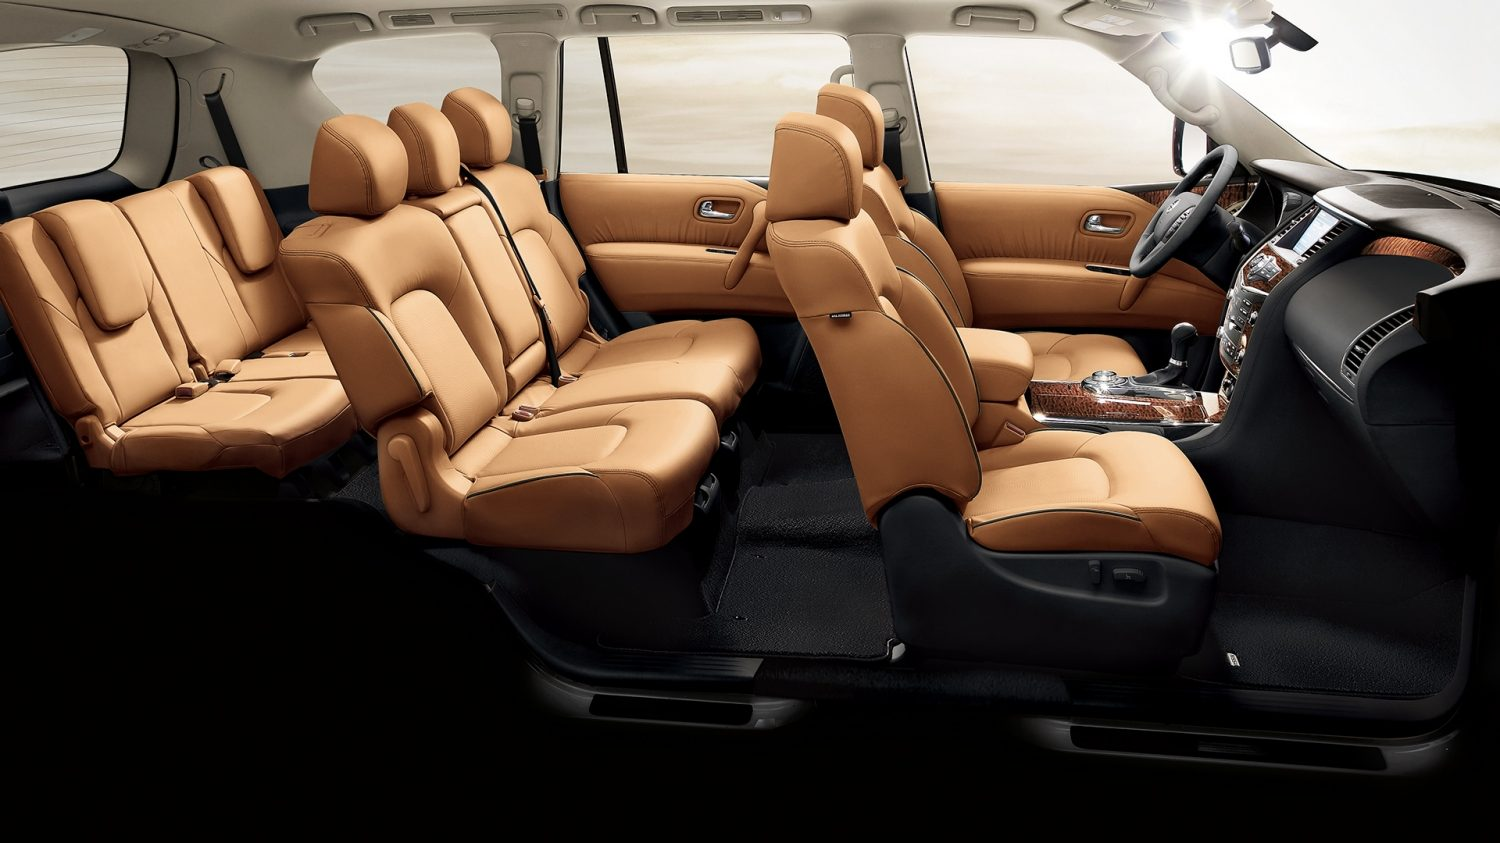 SUV interior panoramic shot - tan leather